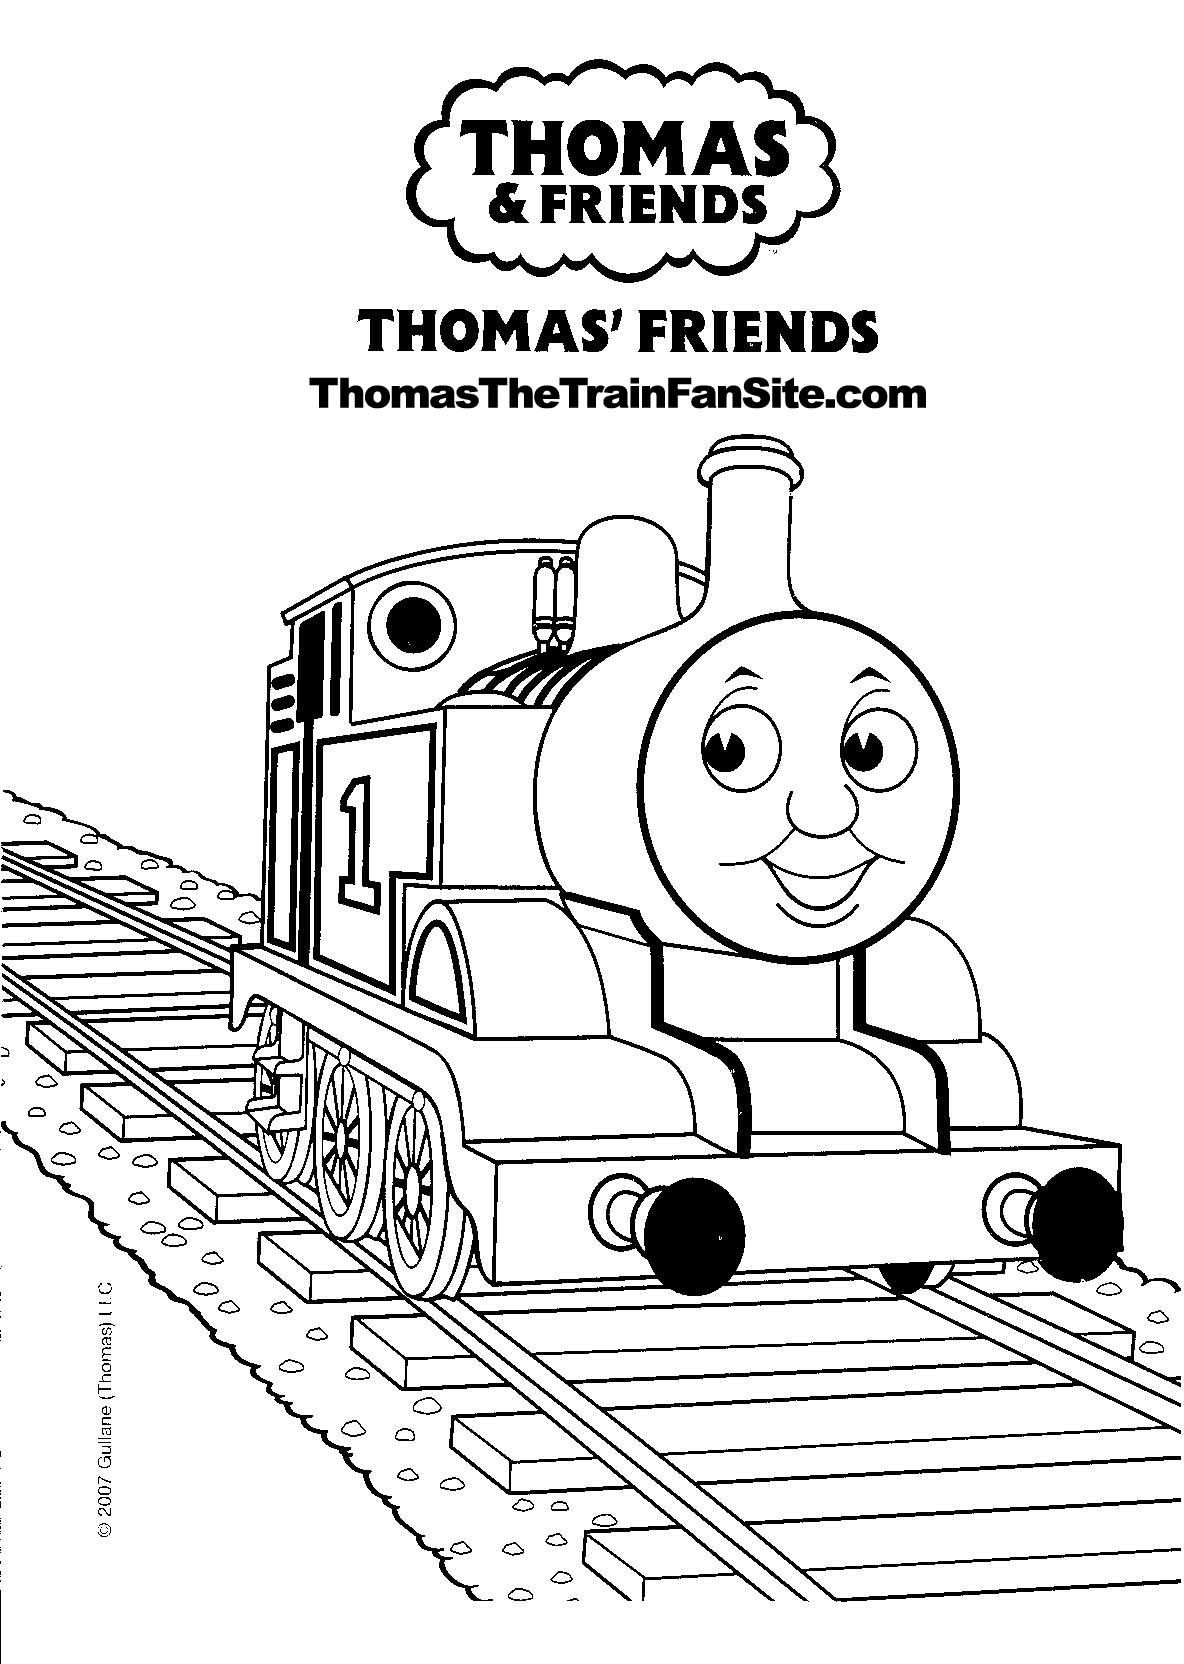 Coloring pages trains for kids - Thomas The Train Coloring Pages Free Thomas The Train Coloring